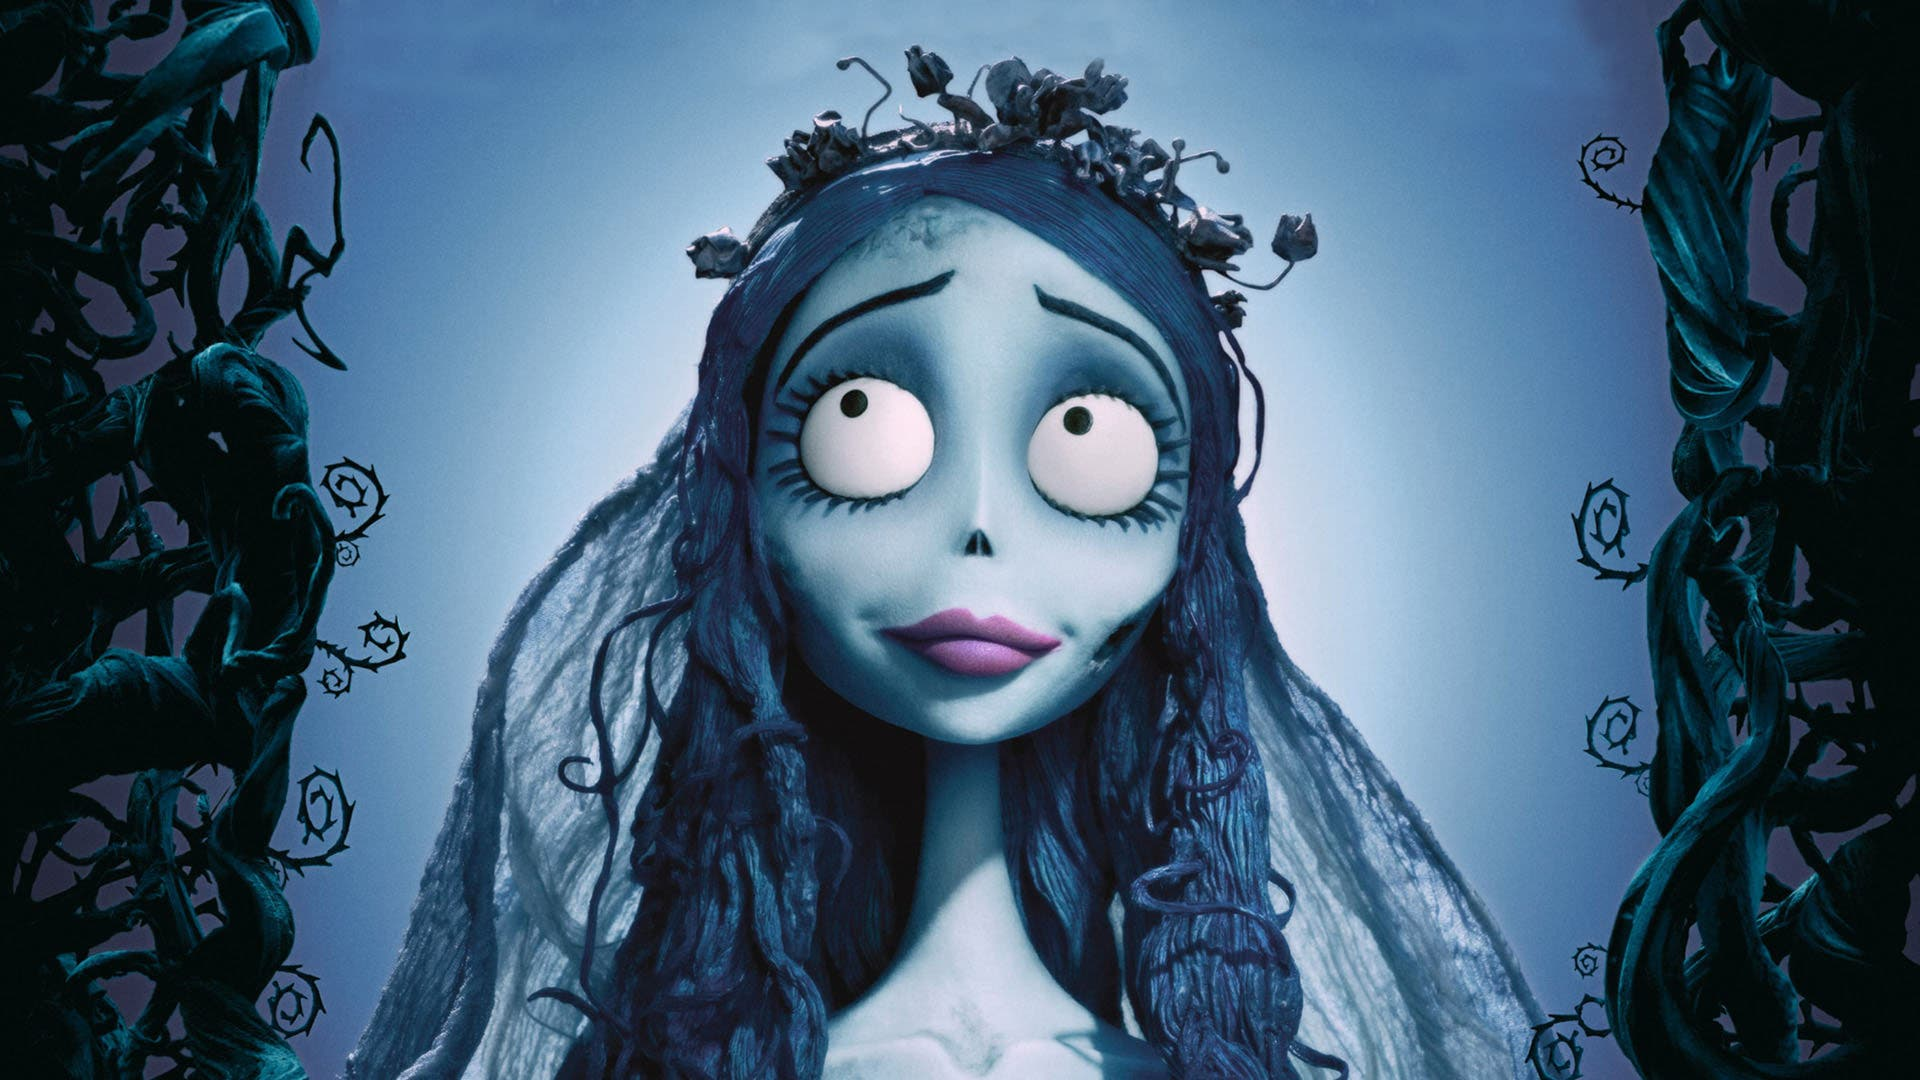 Corpse Bride character.